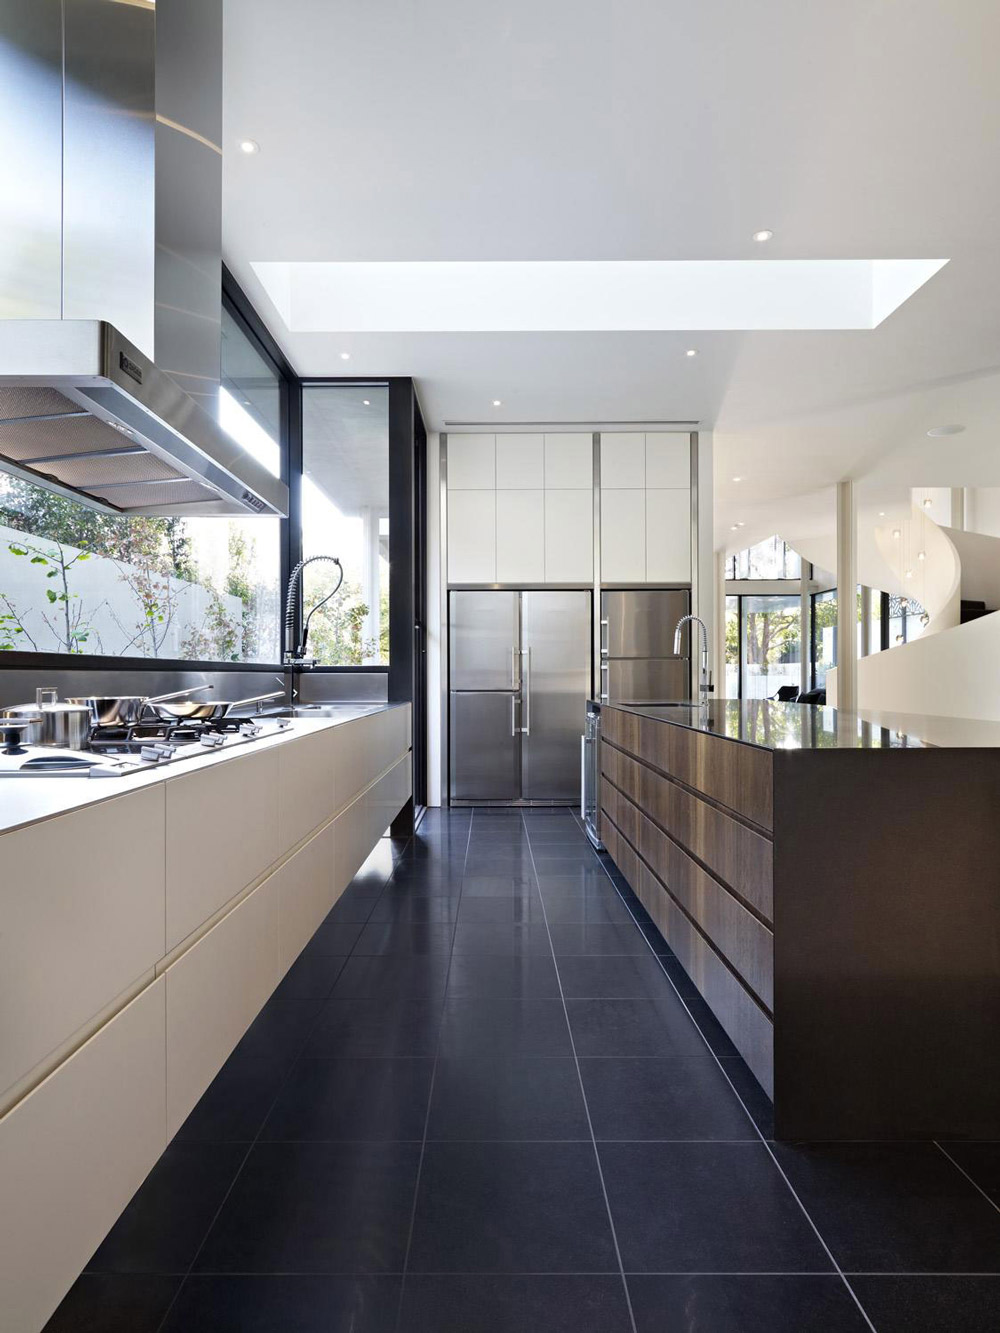 Modern Kitchen, Island, Verdant Avenue Home in Melbourne, Australia by Robert Mills Architects